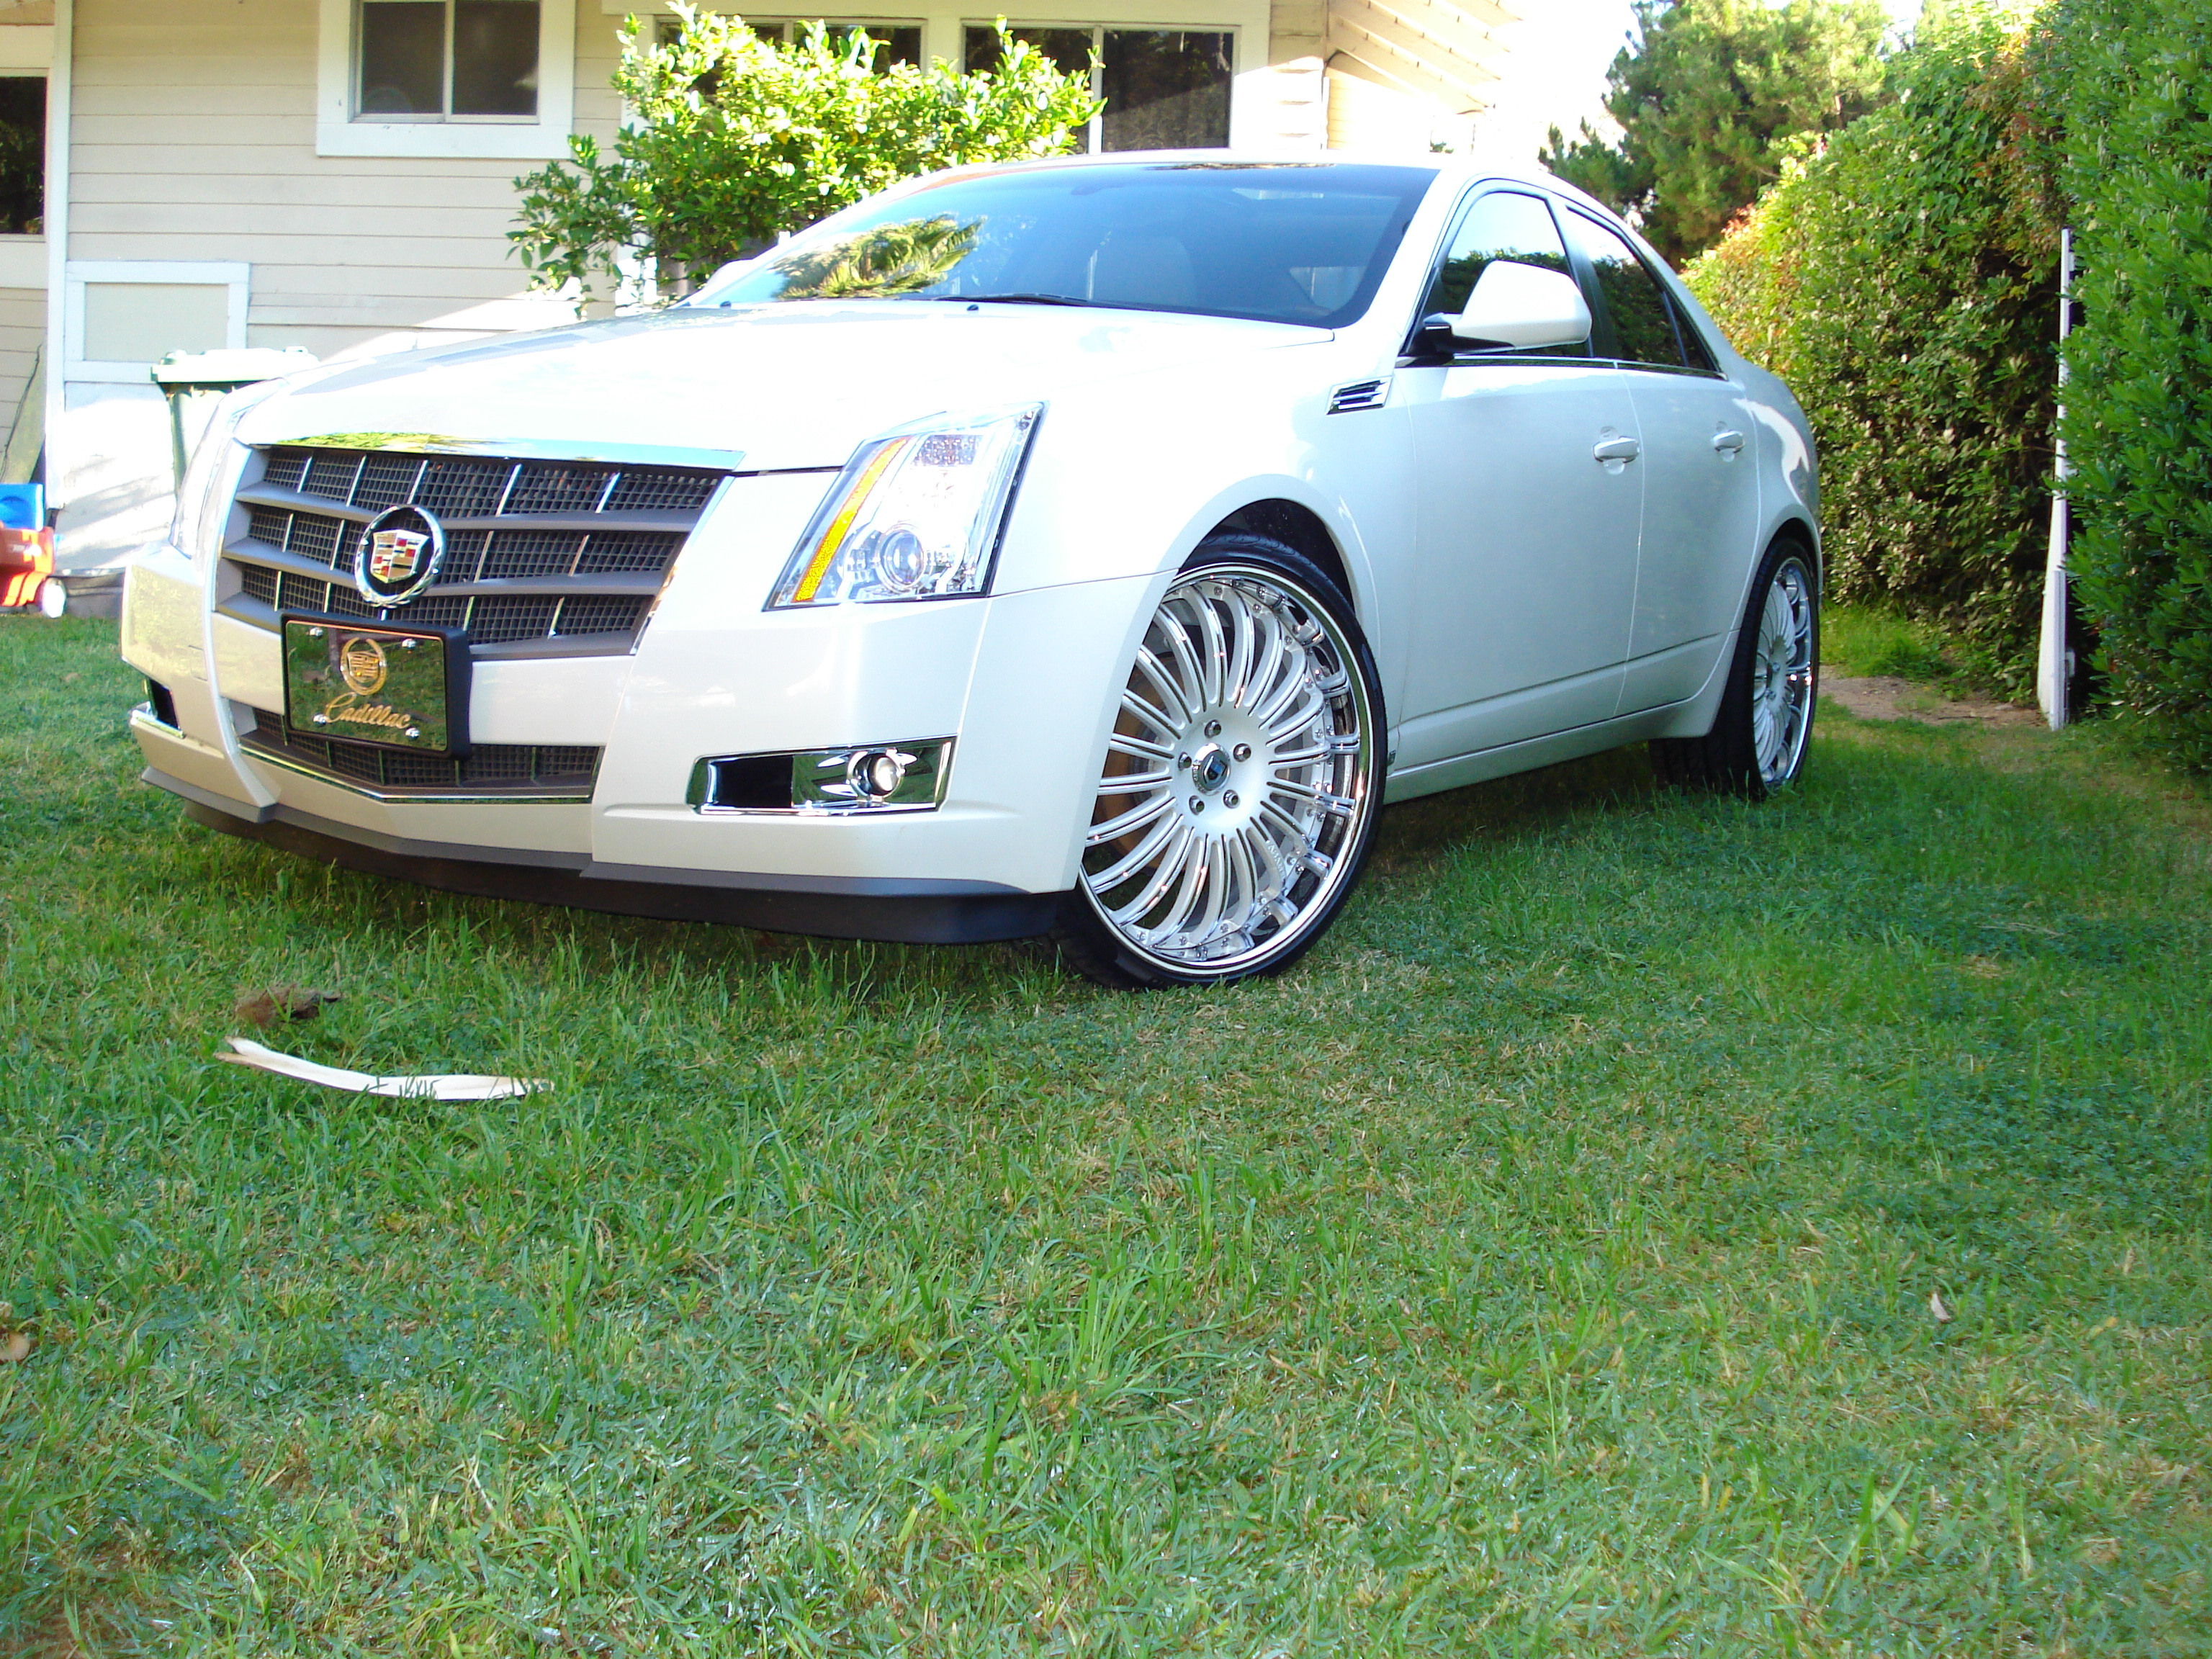 DIAMONDindaROUGH 2008 Cadillac CTS 12928159